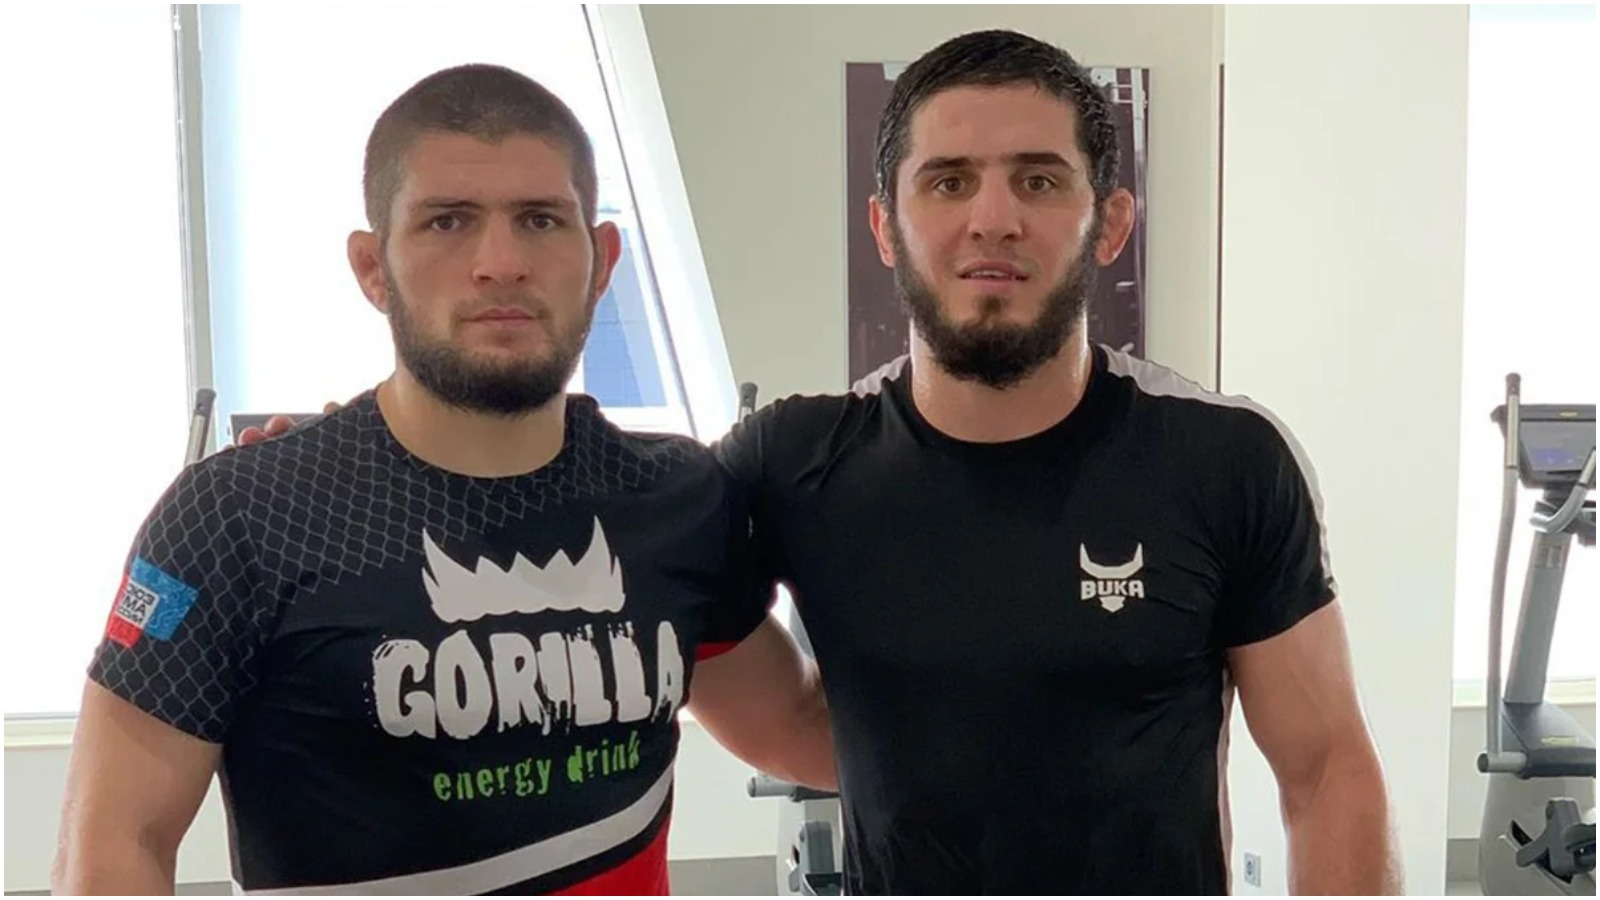 Who is Islam Makhachev? How is he related to Khabib Nurmagomedov? » FirstSportz